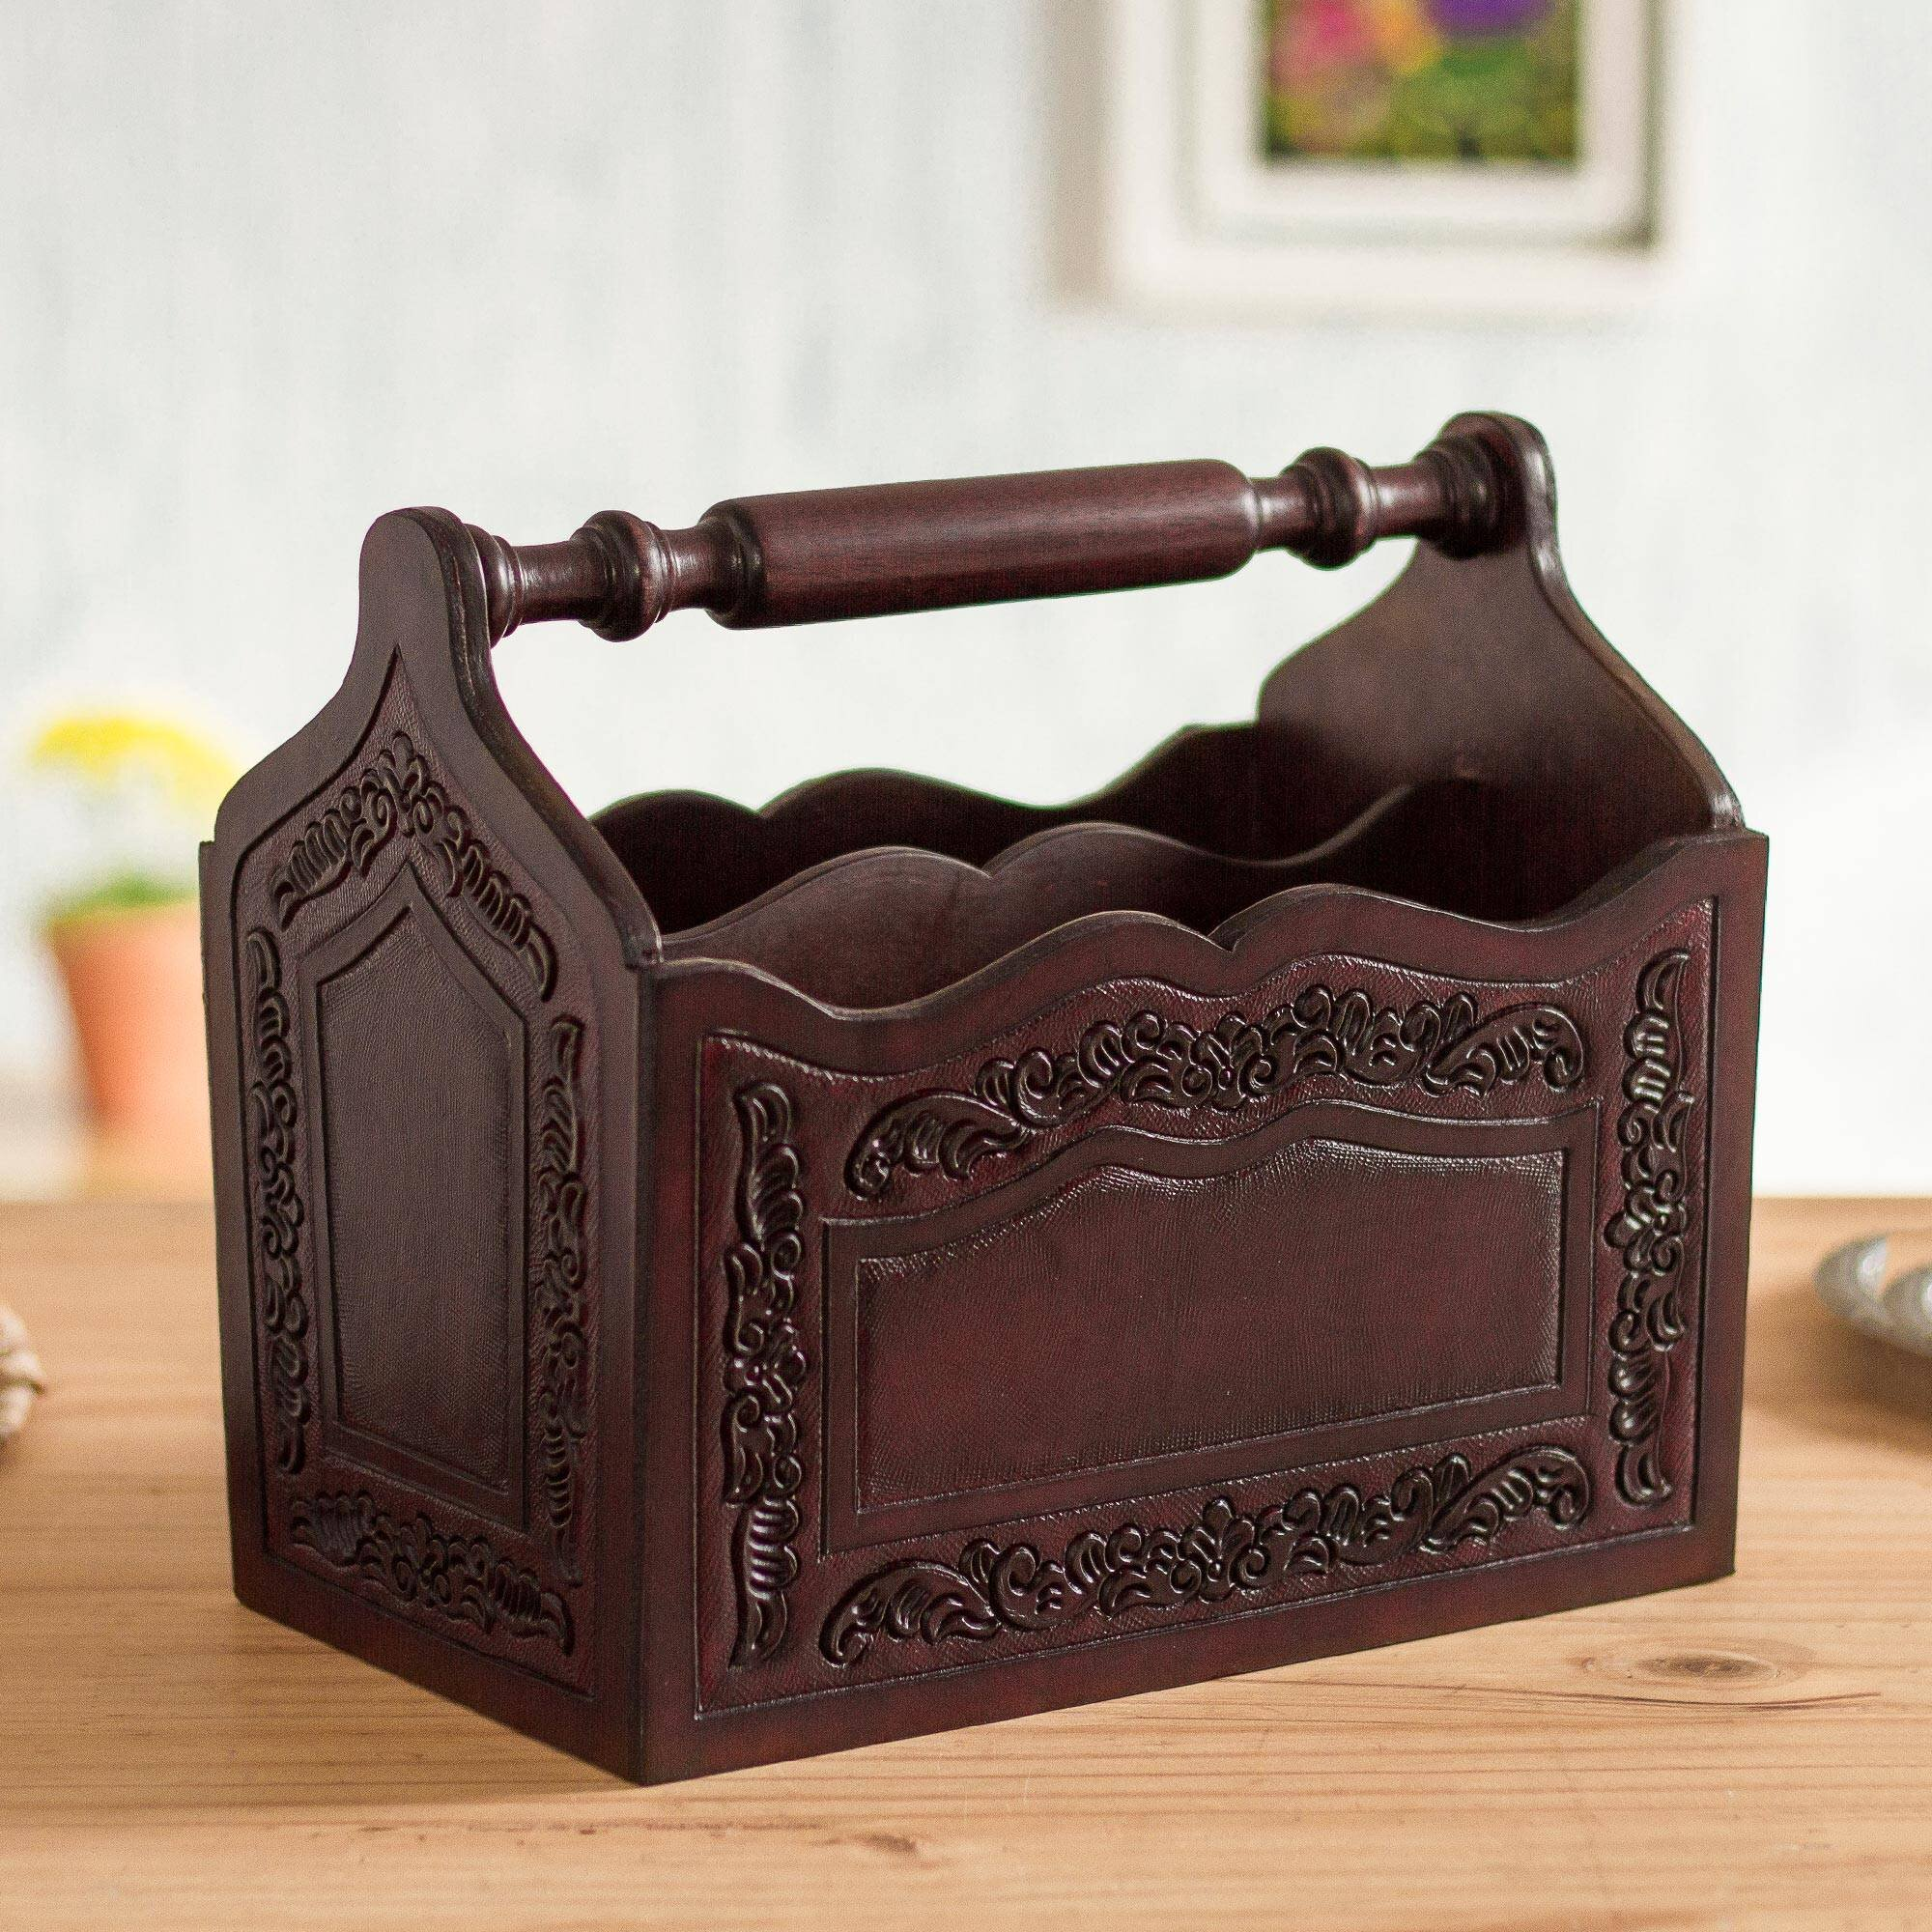 Free Standing Leather Faux Leather Magazine Racks You Ll Love In 2021 Wayfair